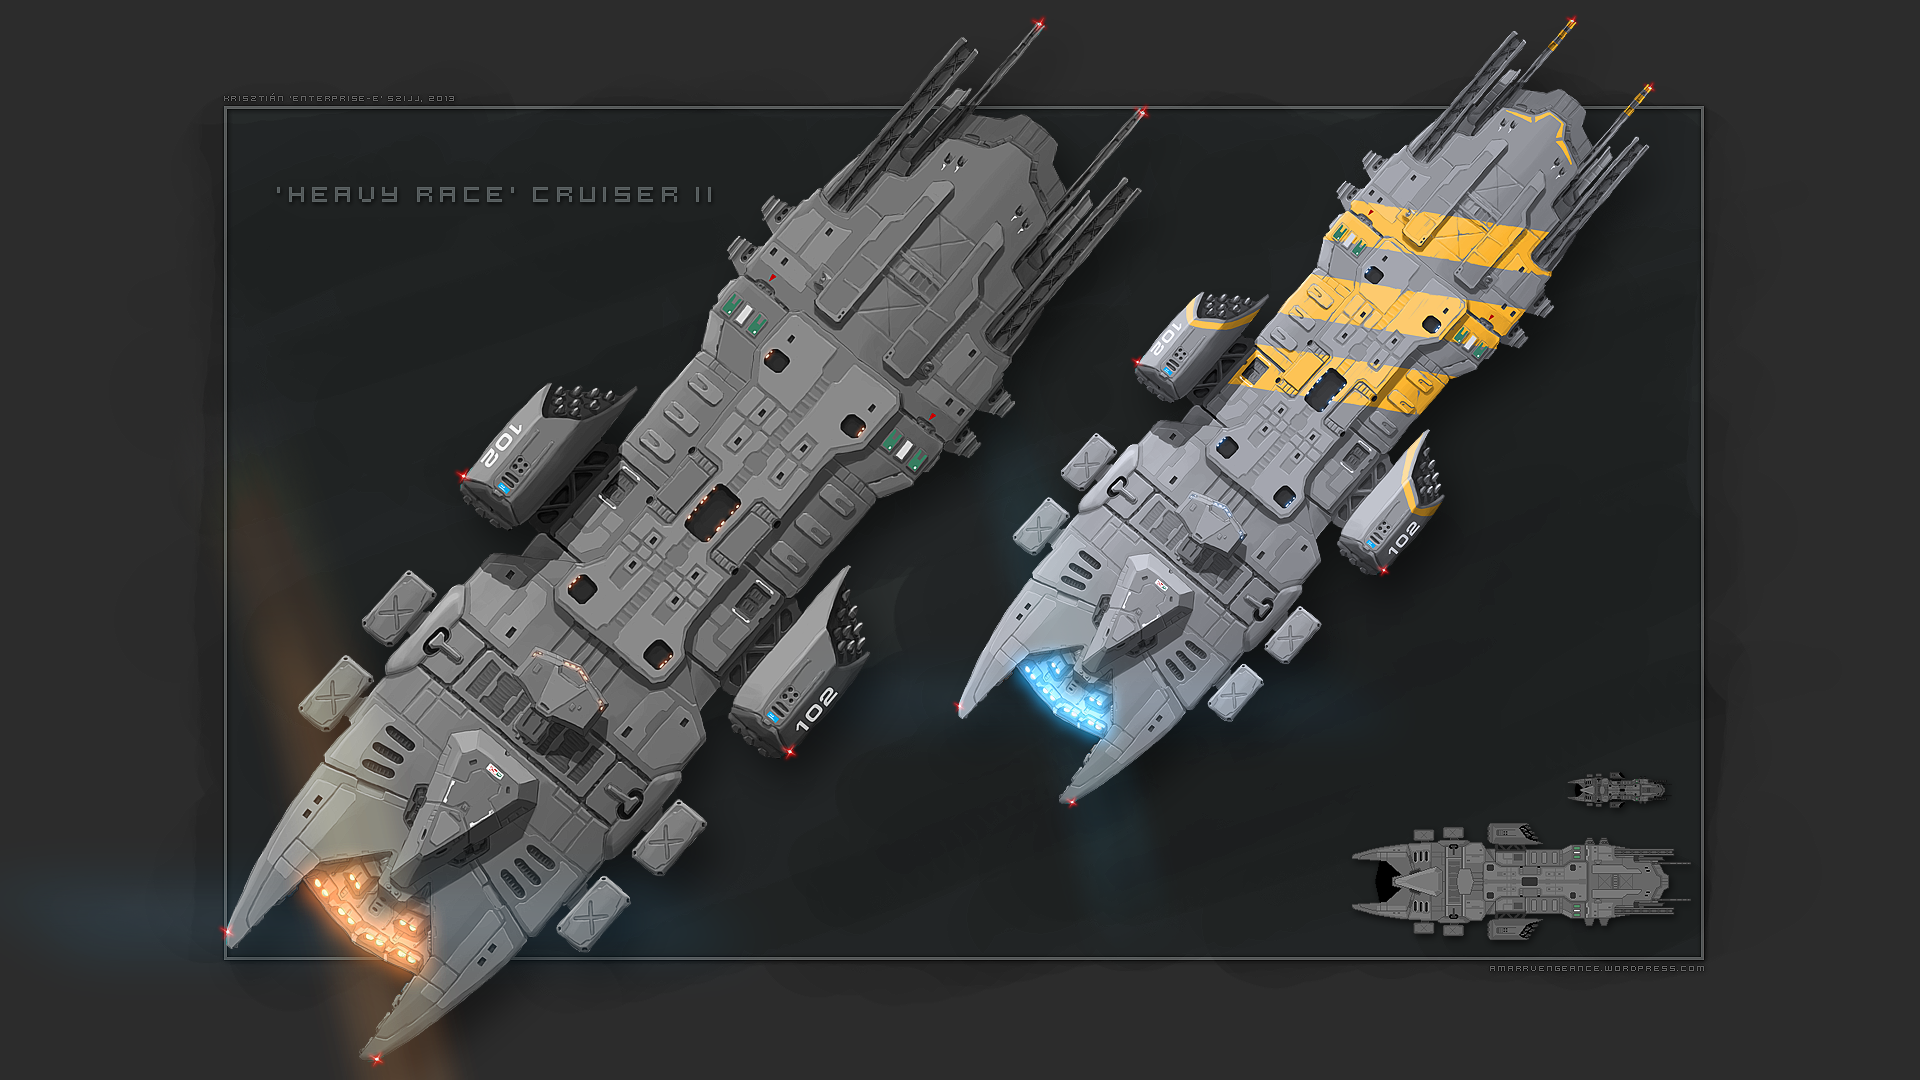 Heavy II concept by Enterprise-E